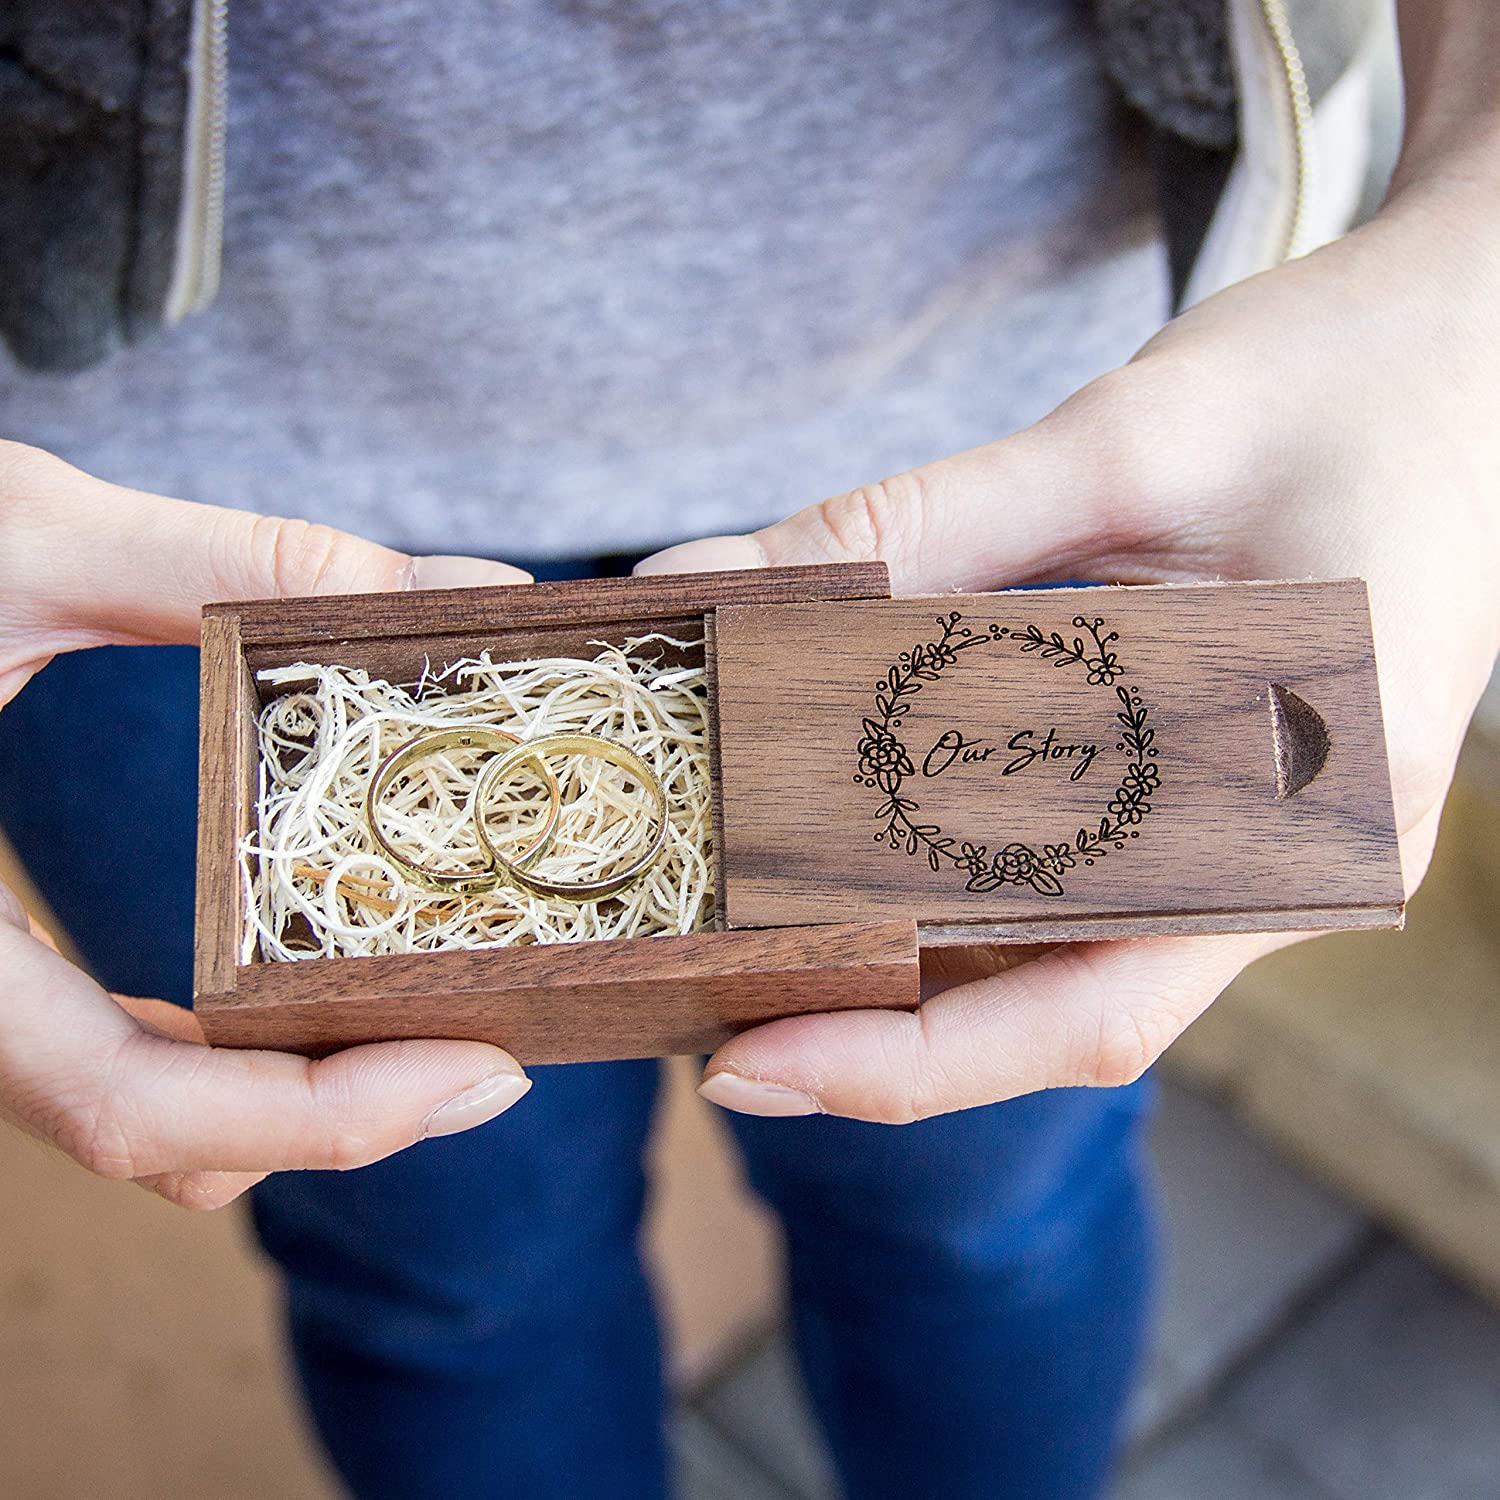 Our Story Engraved Wood Wedding Ring Box (Ring Bearer Box, Small Jewelry Gift Box, Engagement Ring Box, Photo Prop)